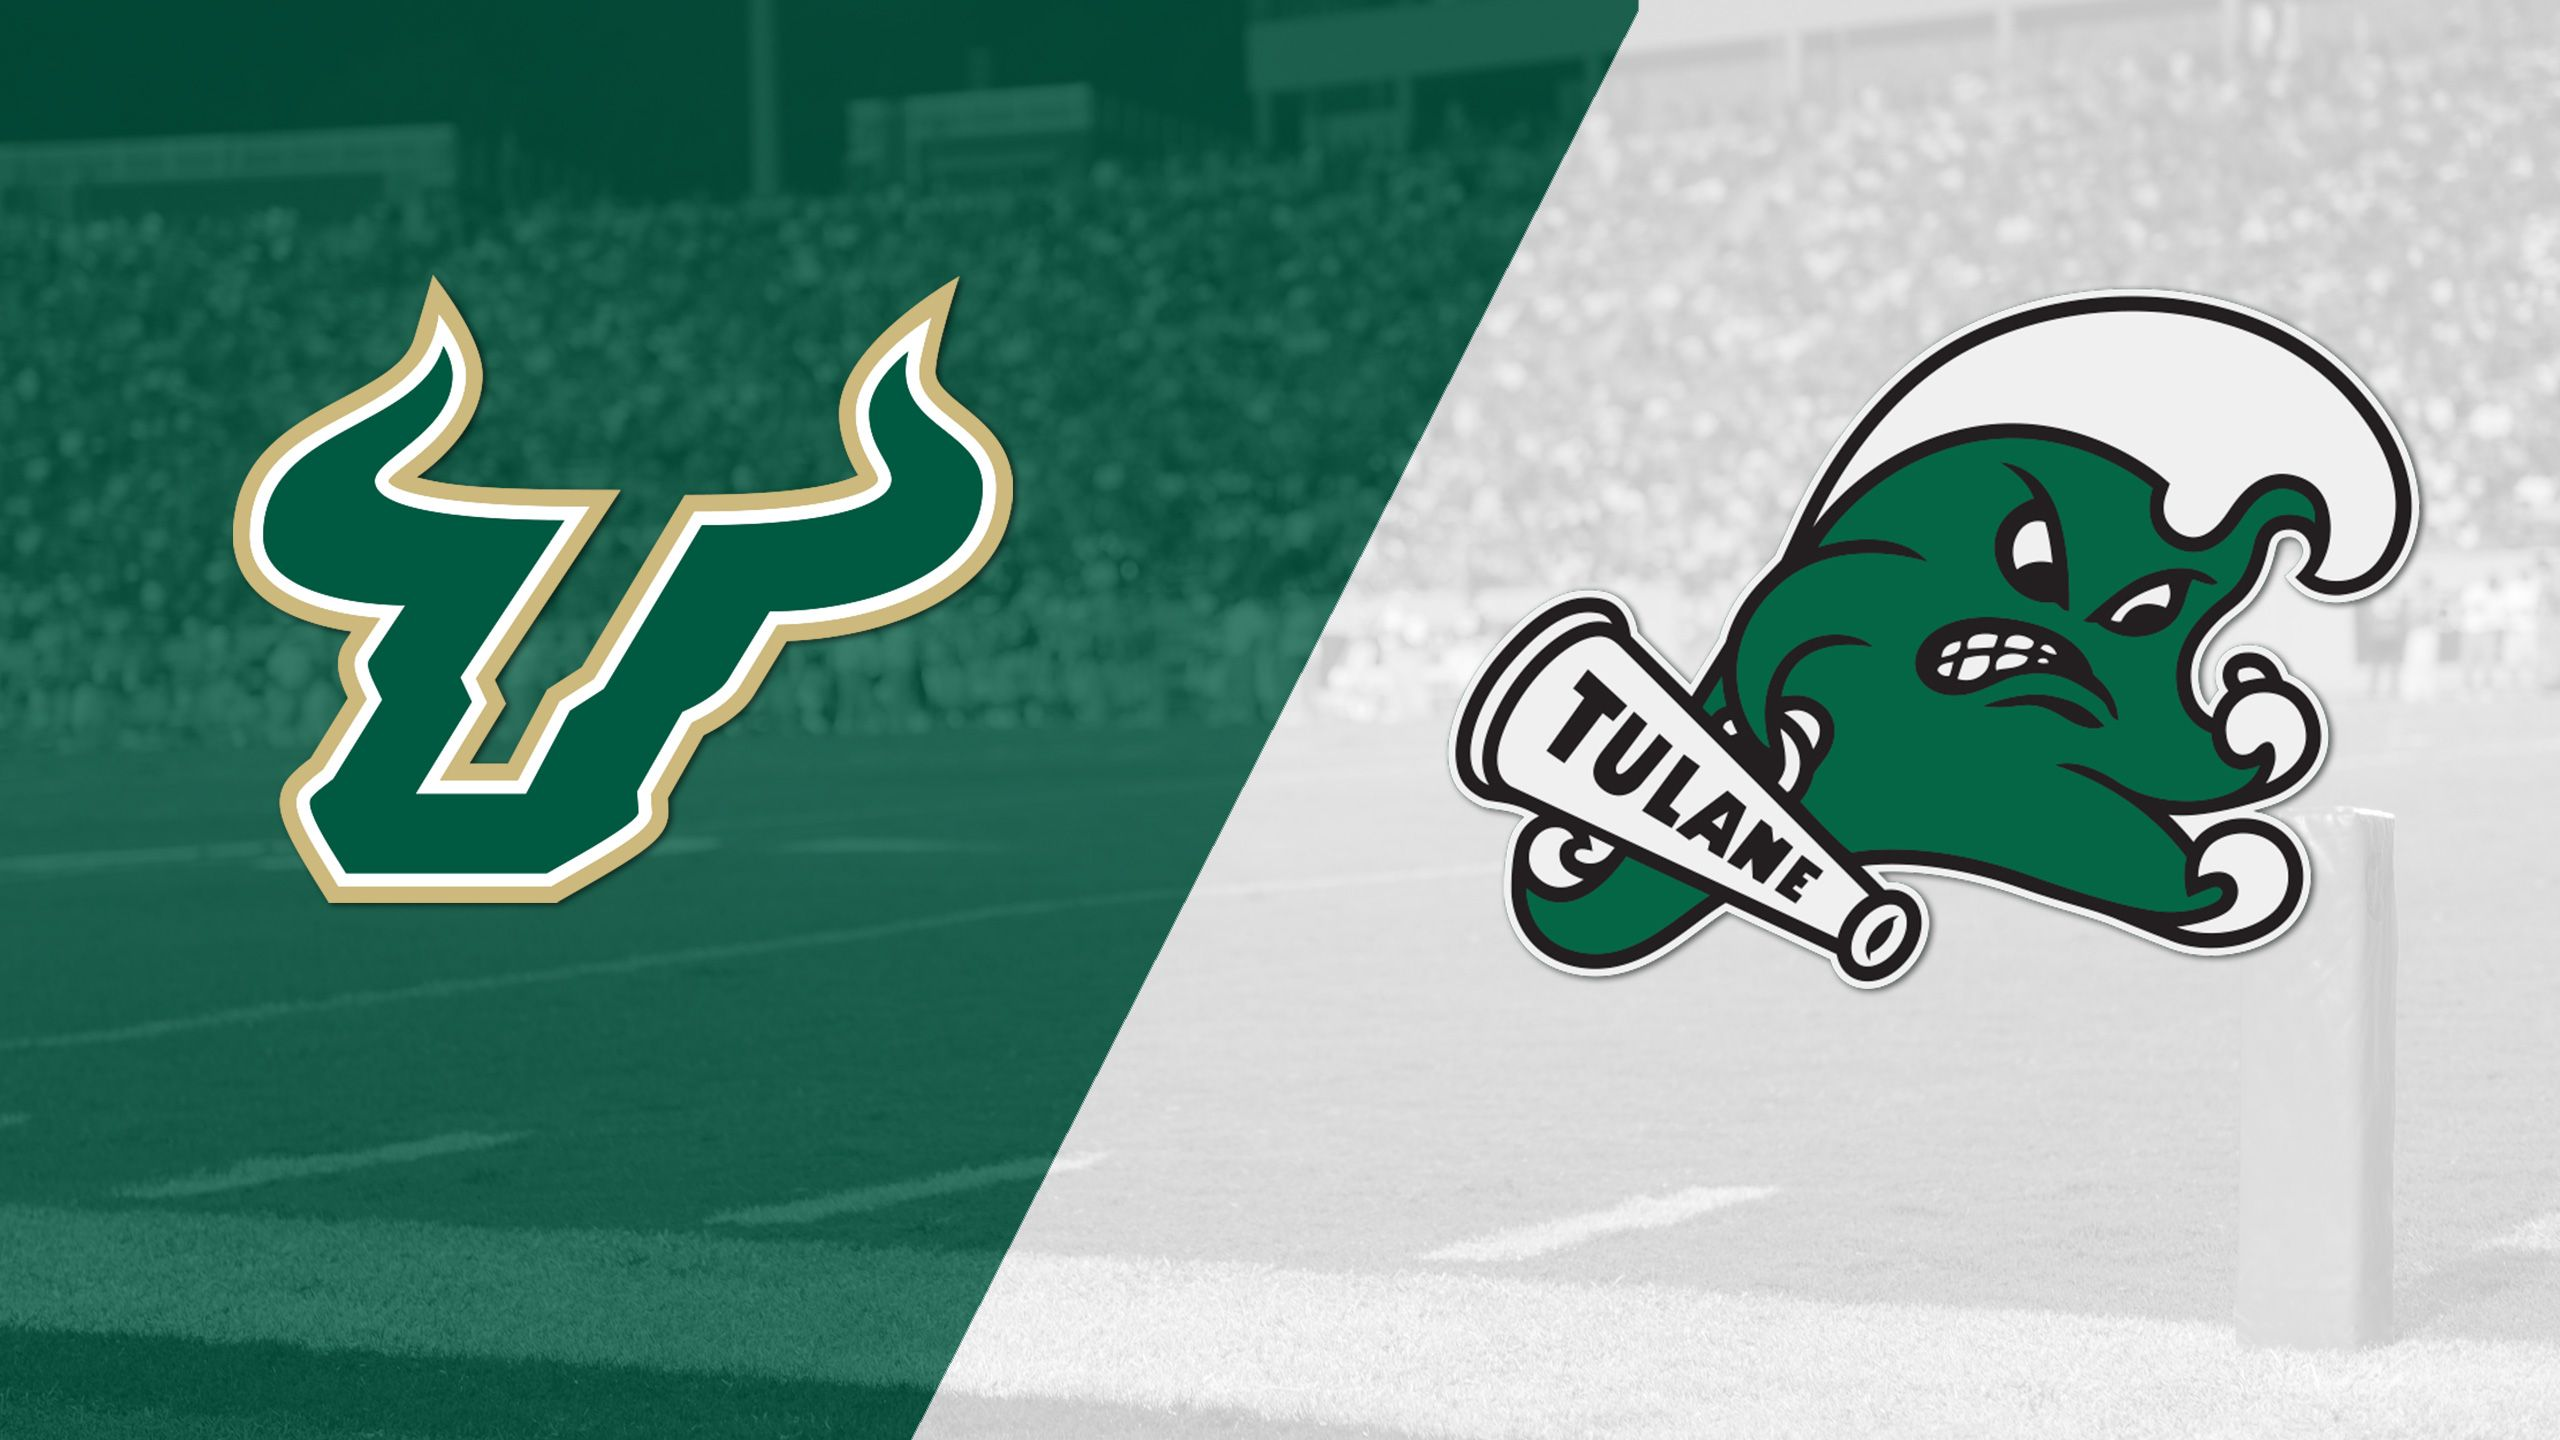 #16 South Florida vs. Tulane (Football)